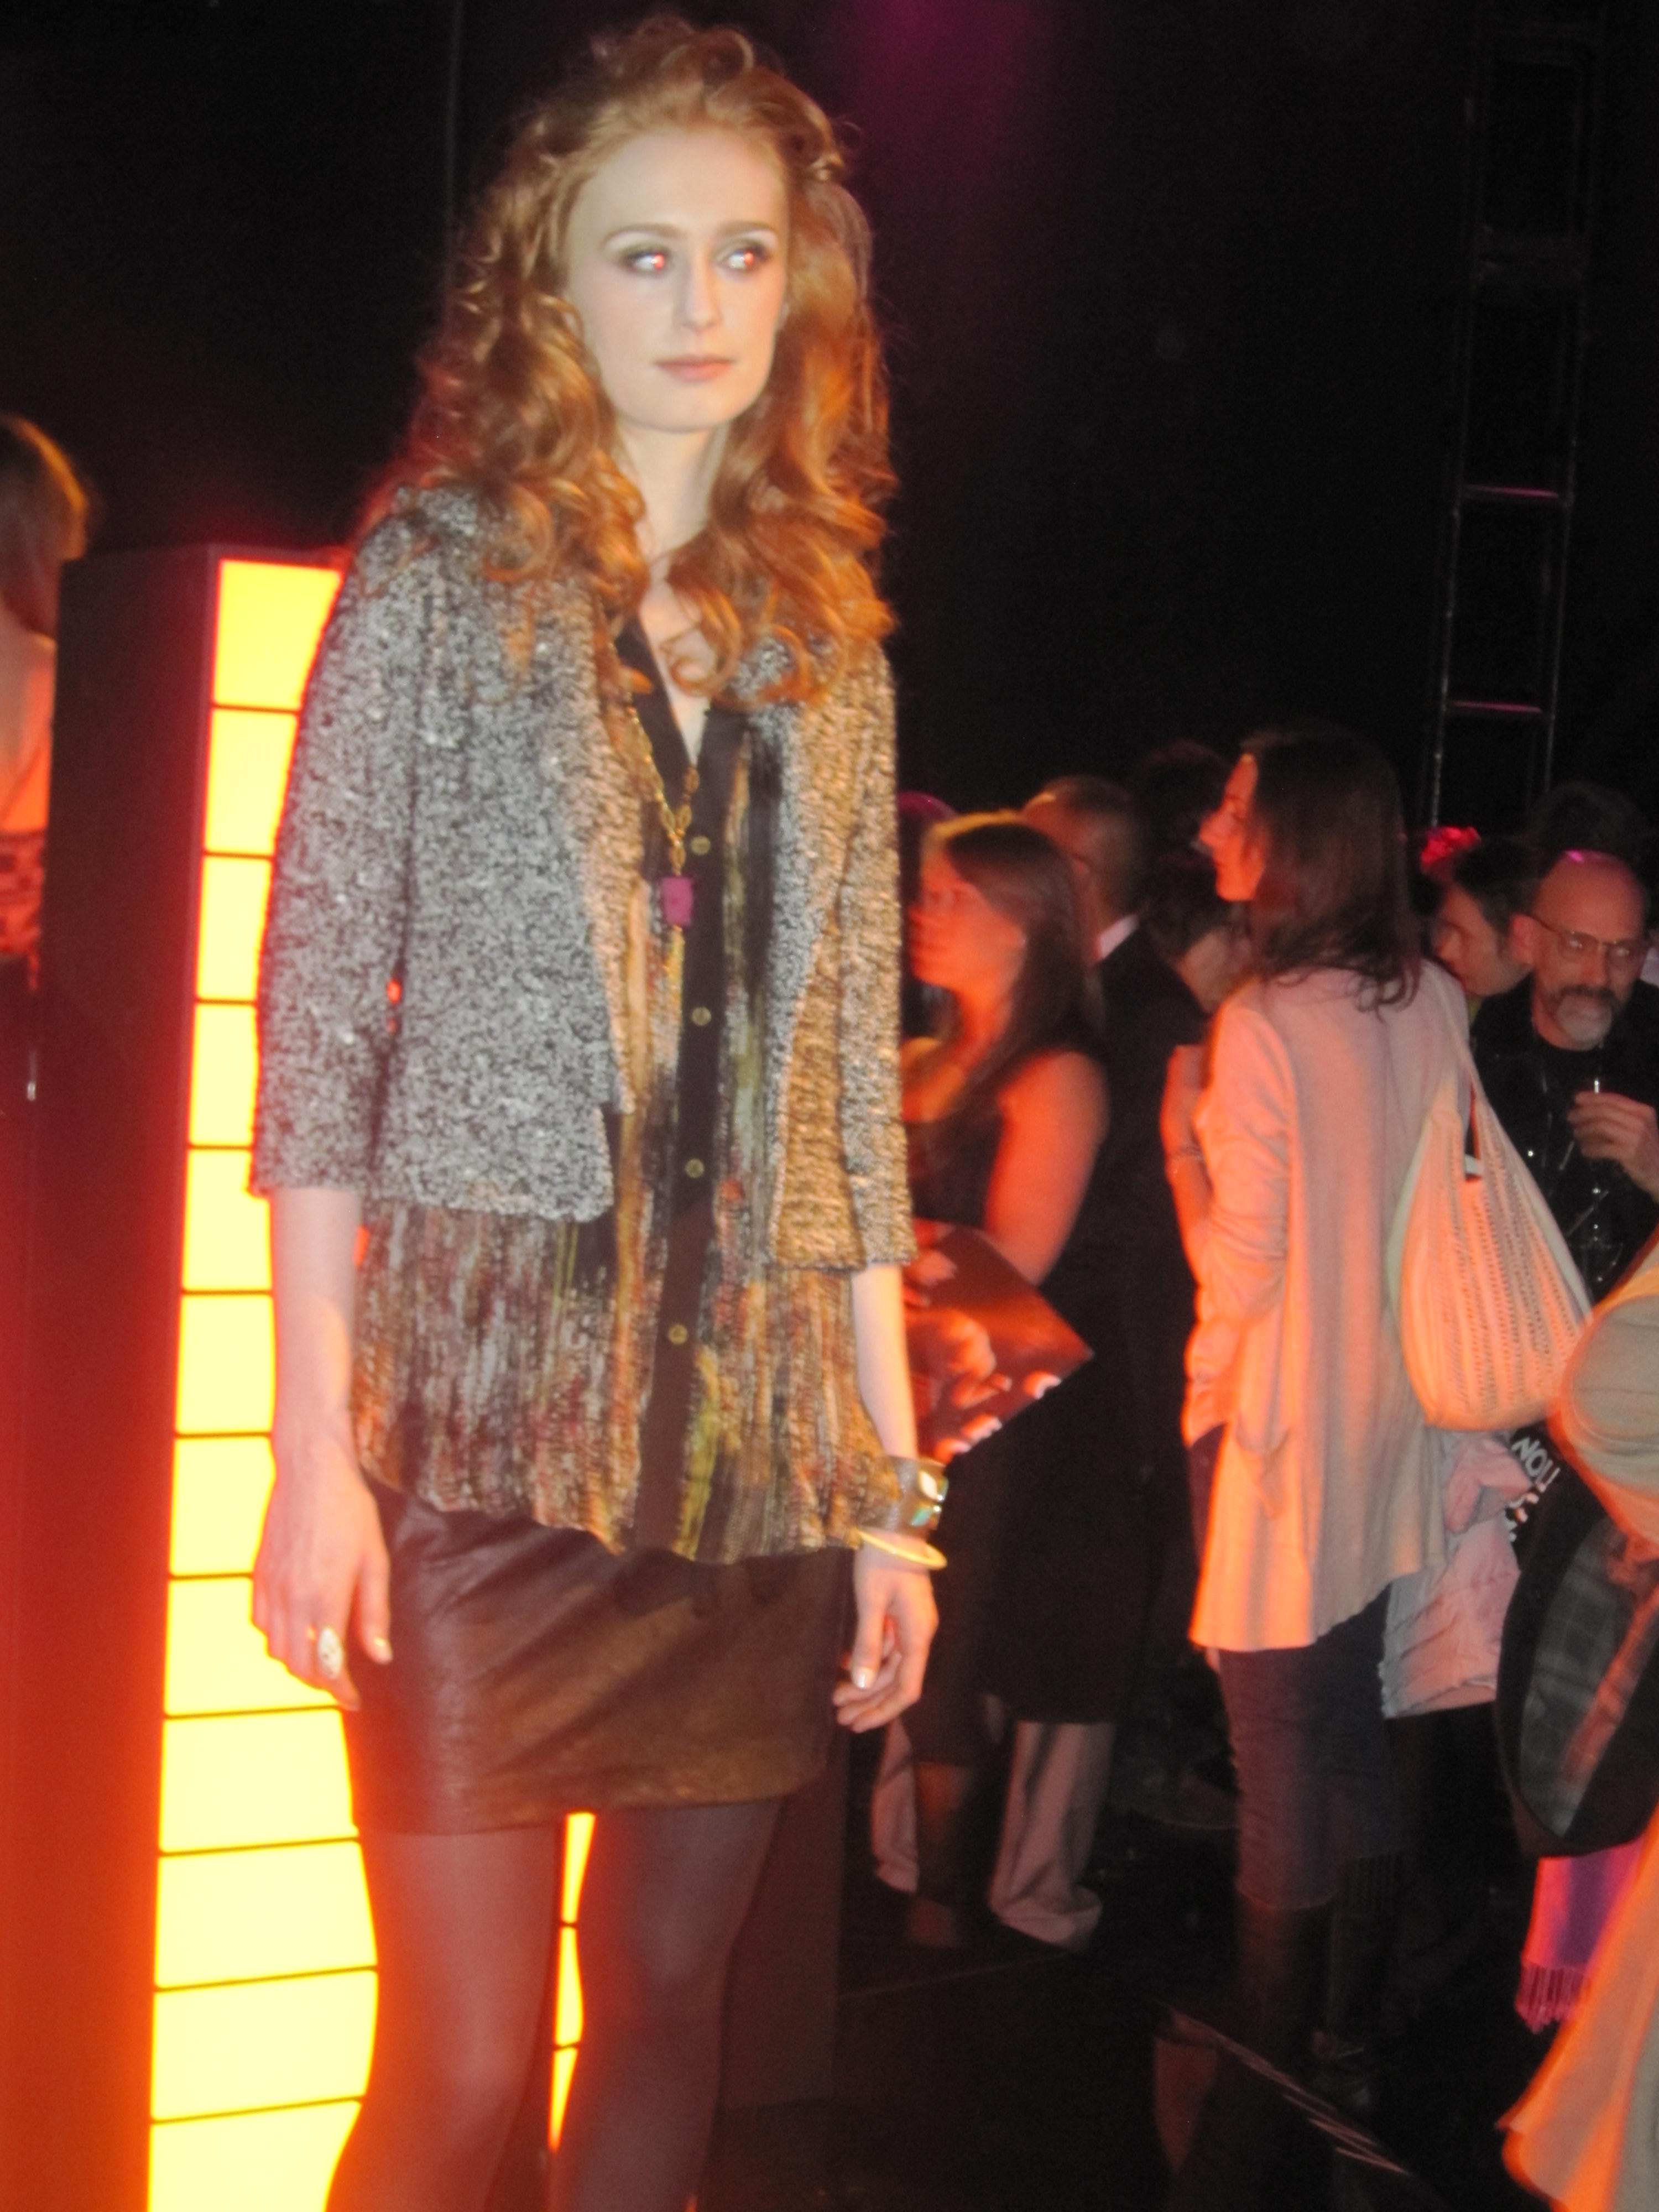 013 Flashback to NYC Fashion Week Spring 2011~ With Love necklace collection